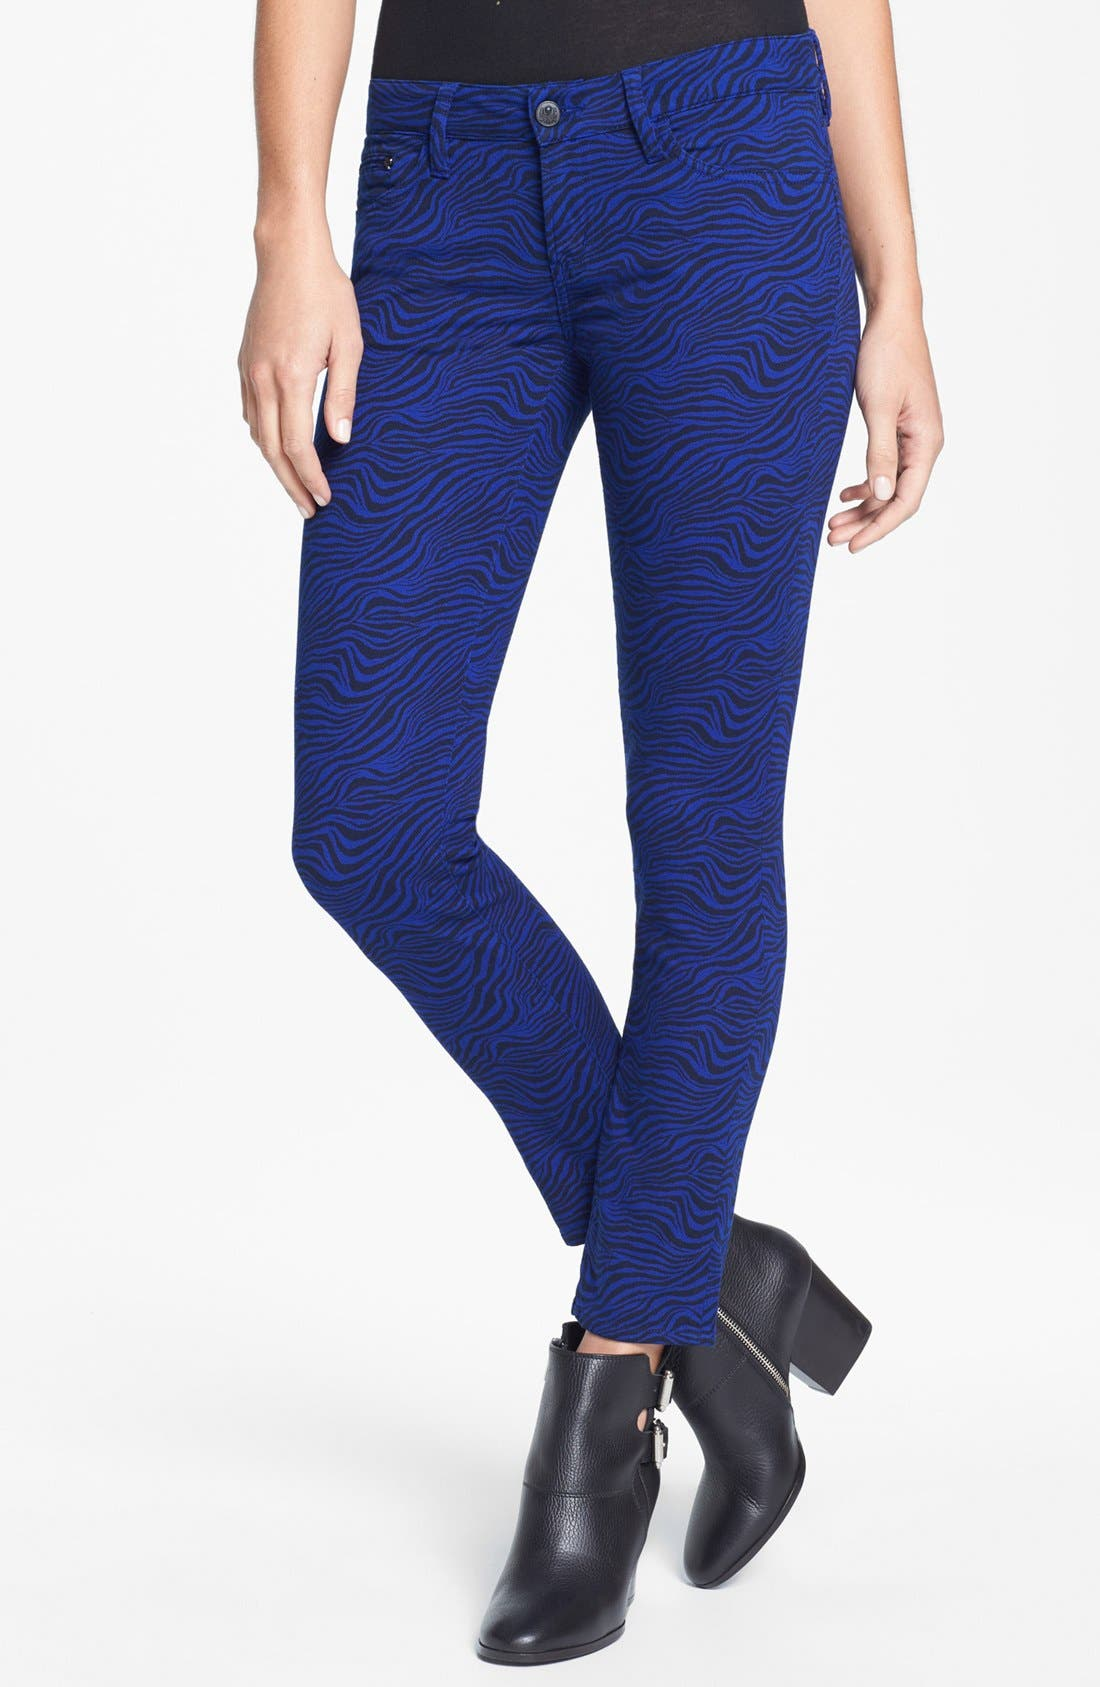 Alternate Image 1 Selected - The Kooples Zebra Print Stretch Skinny Jeans